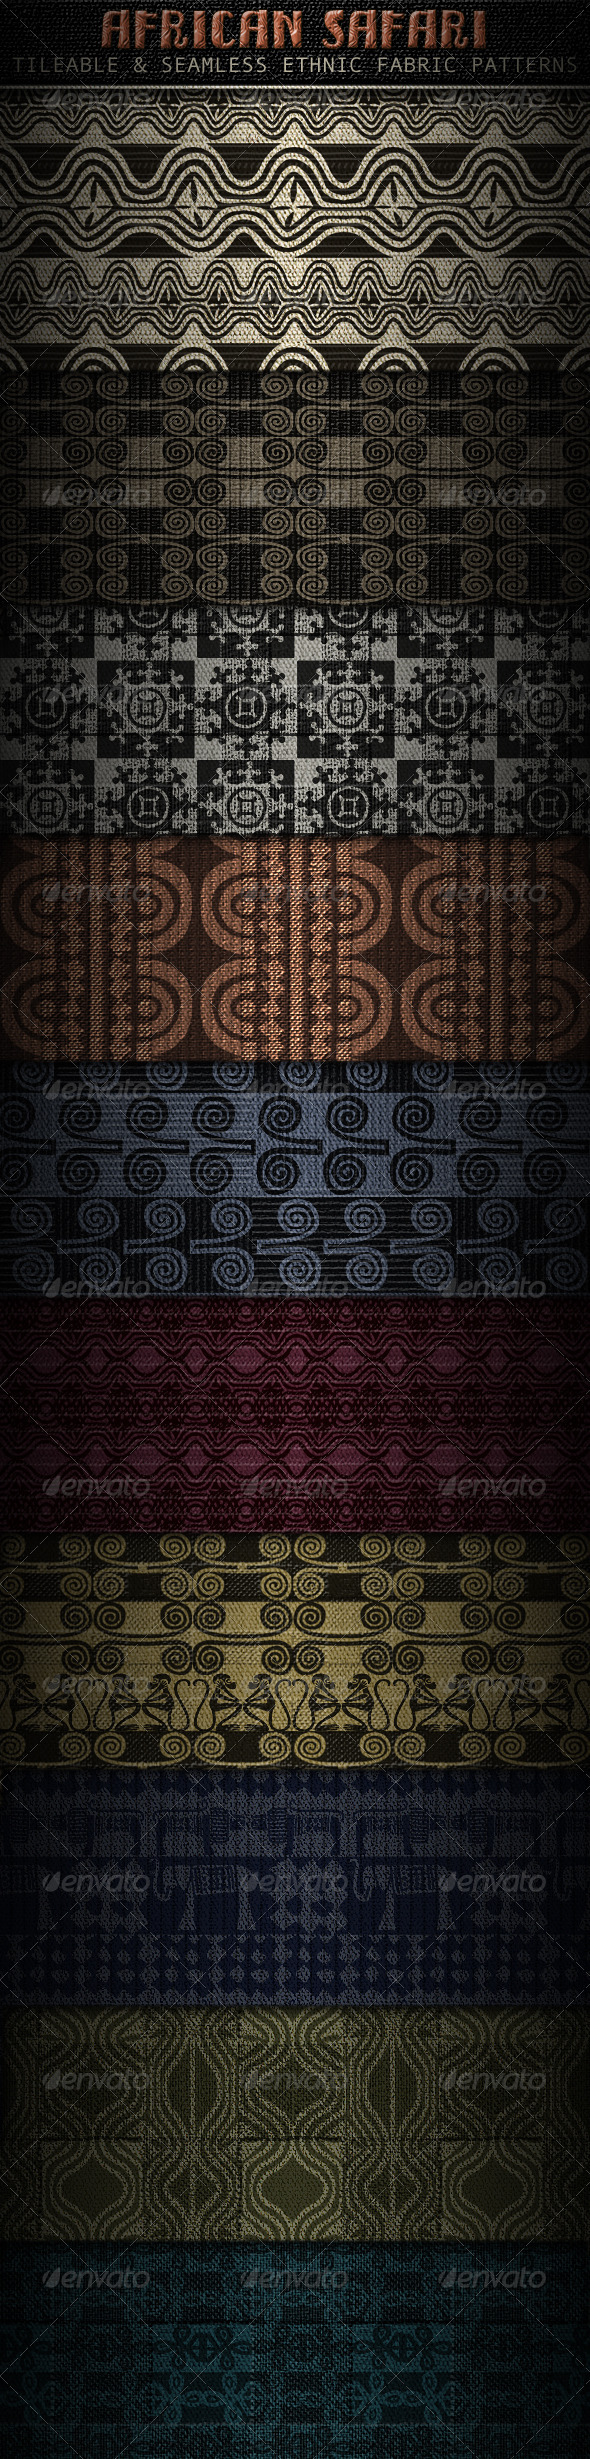 Ethnic Fabric Patterns; Africa inspired - Patterns Backgrounds